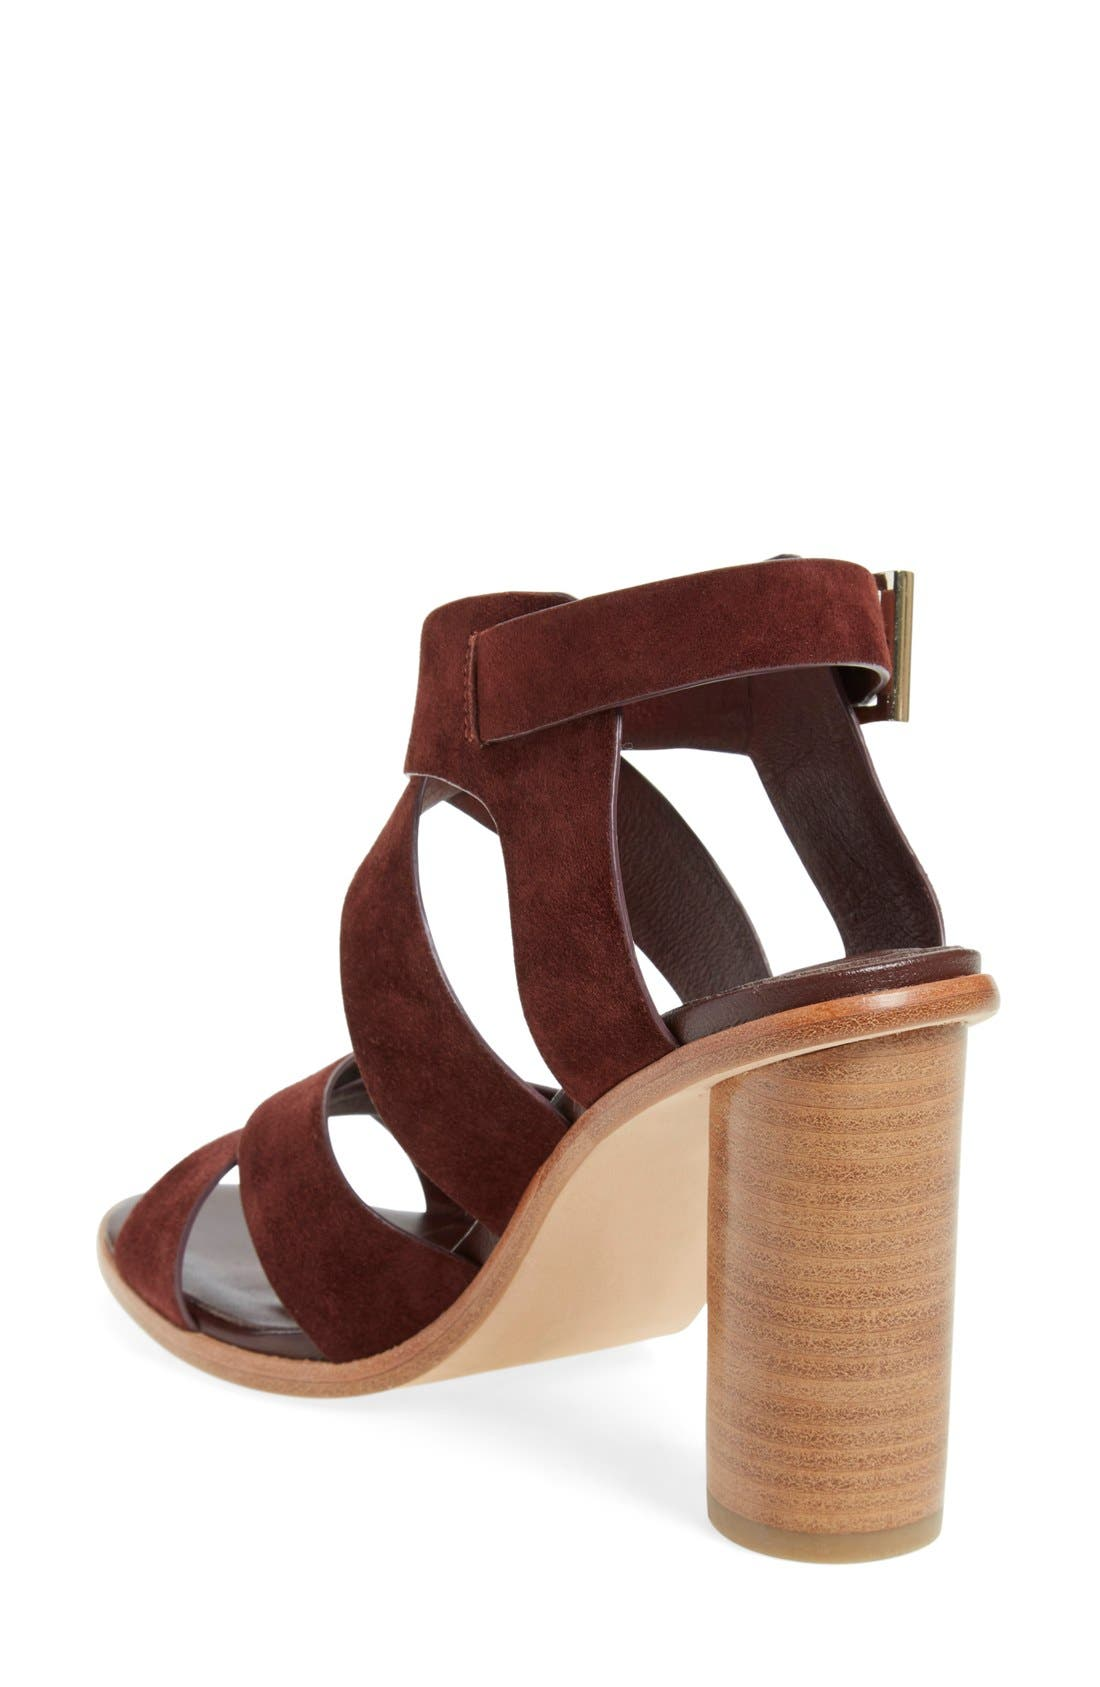 'Avery' Crisscross Block Heel Sandal,                             Alternate thumbnail 2, color,                             Oxblood Suede